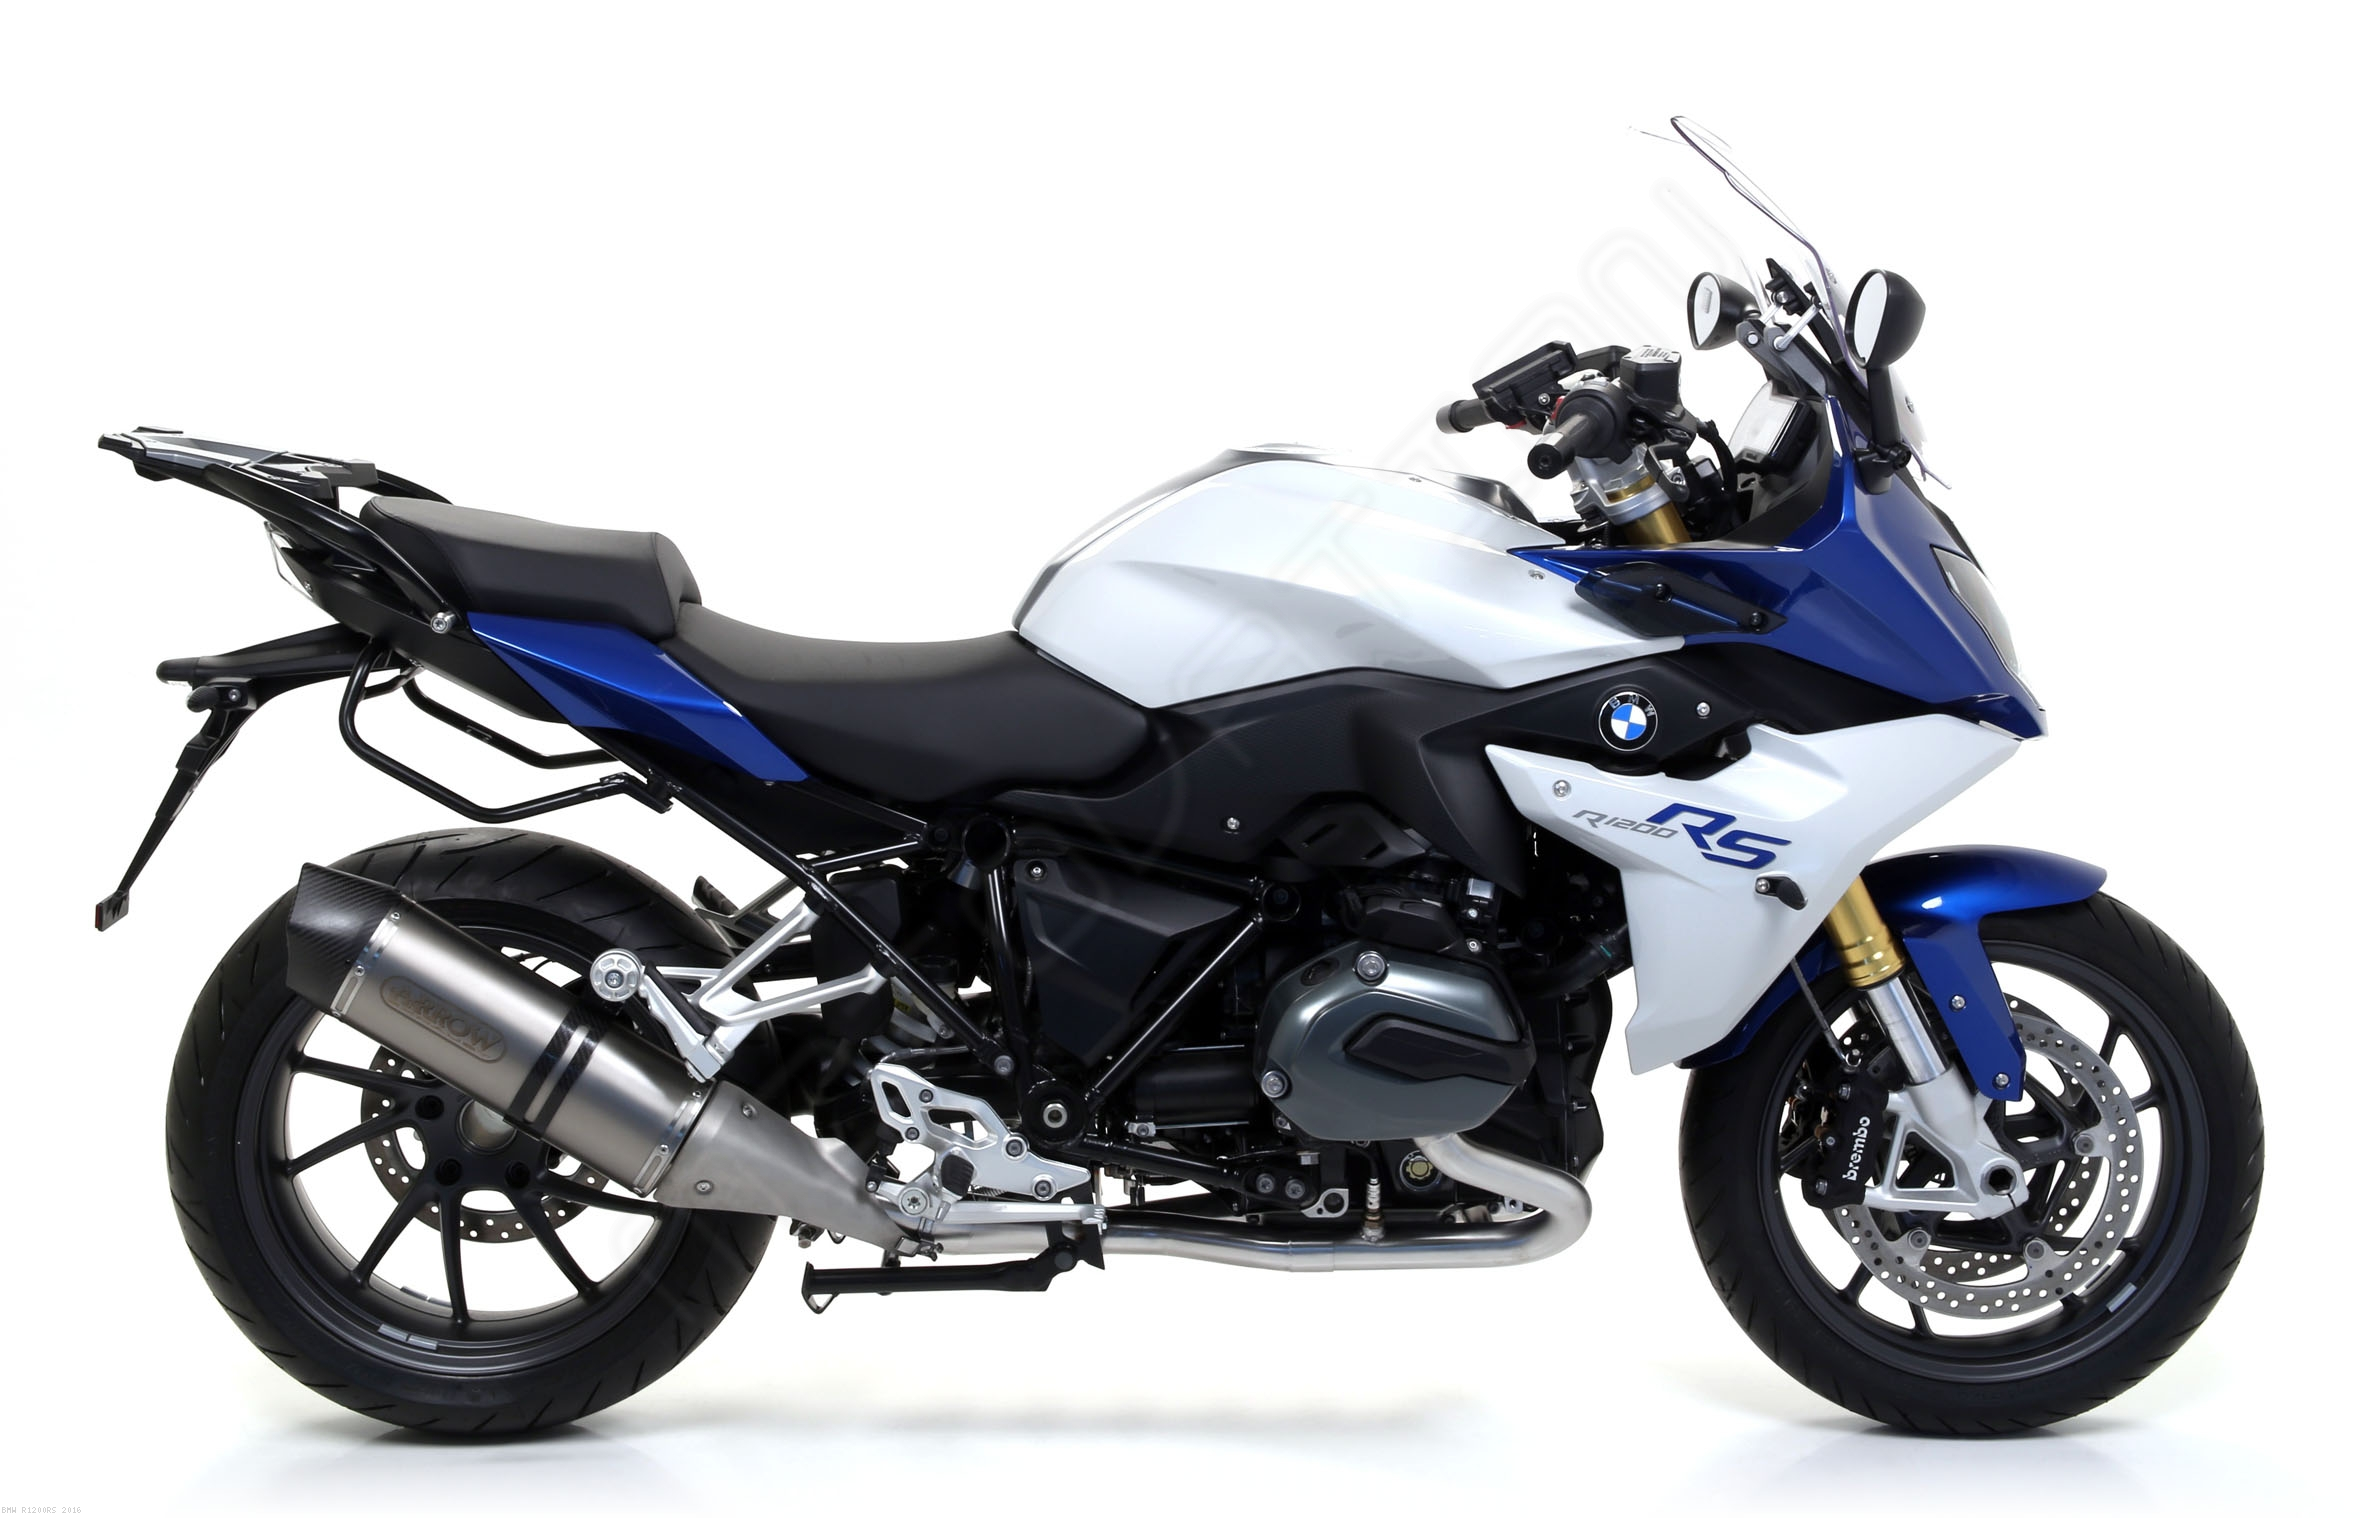 maxi race tech exhaust by arrow bmw r1200rs 2016 71842. Black Bedroom Furniture Sets. Home Design Ideas